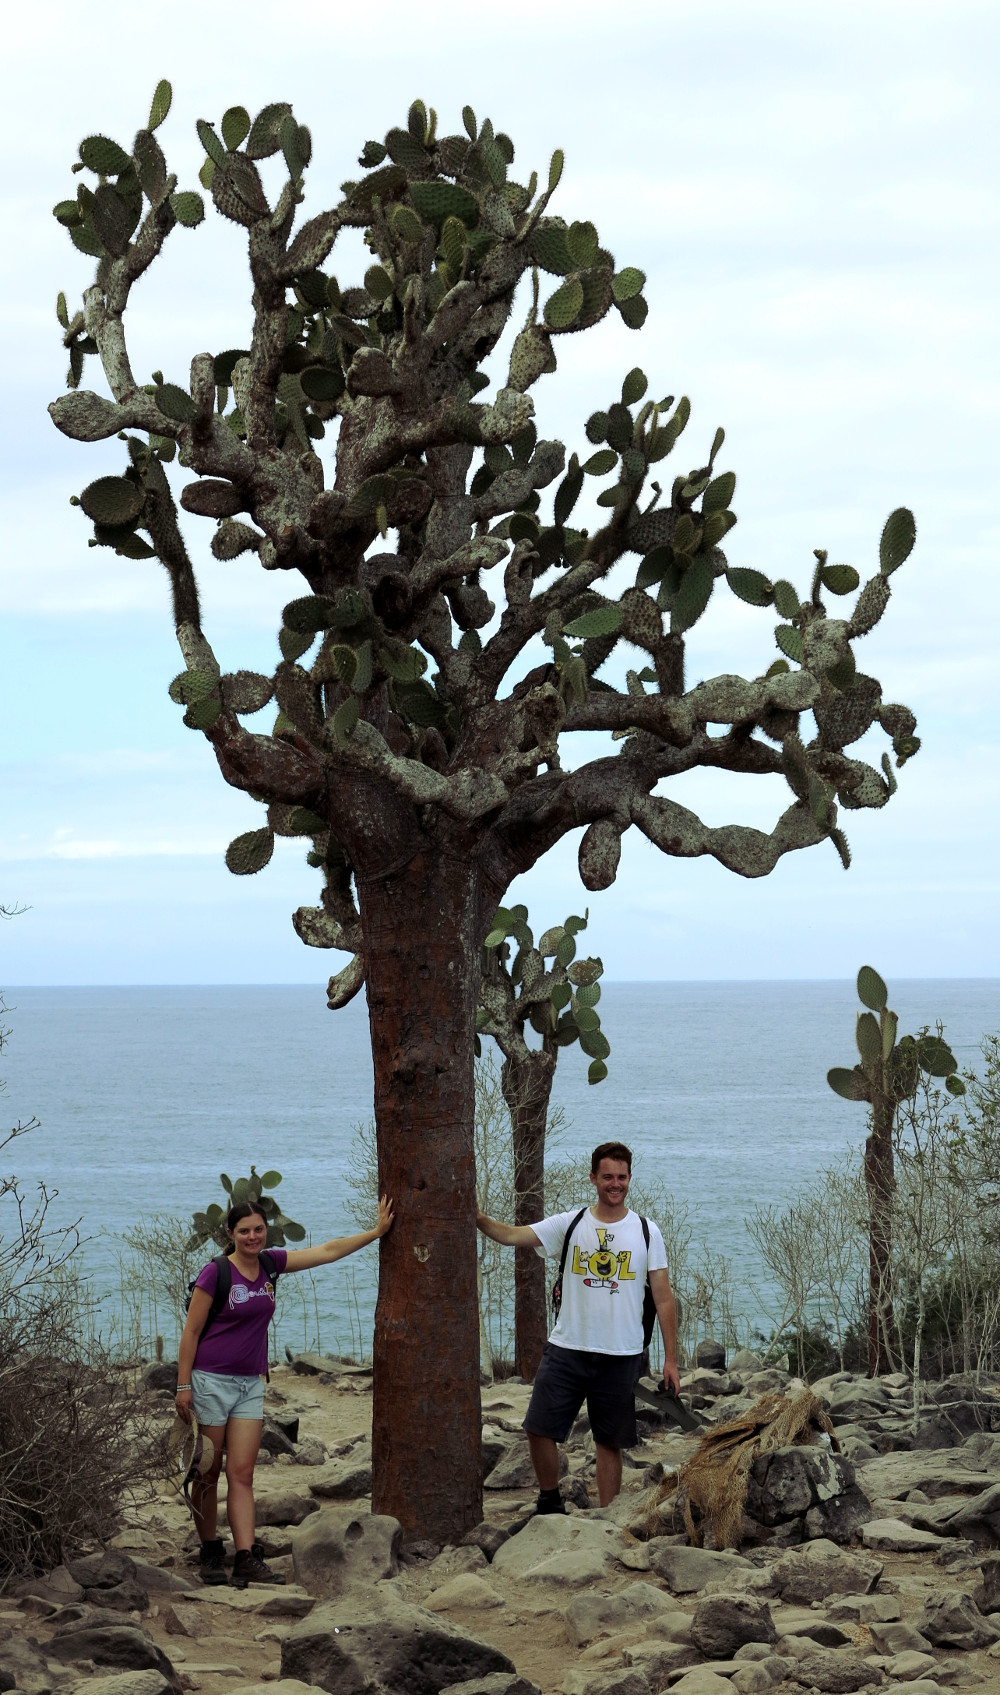 Giant cactus on Santa Fe Galapagos Double-Barrelled Travel